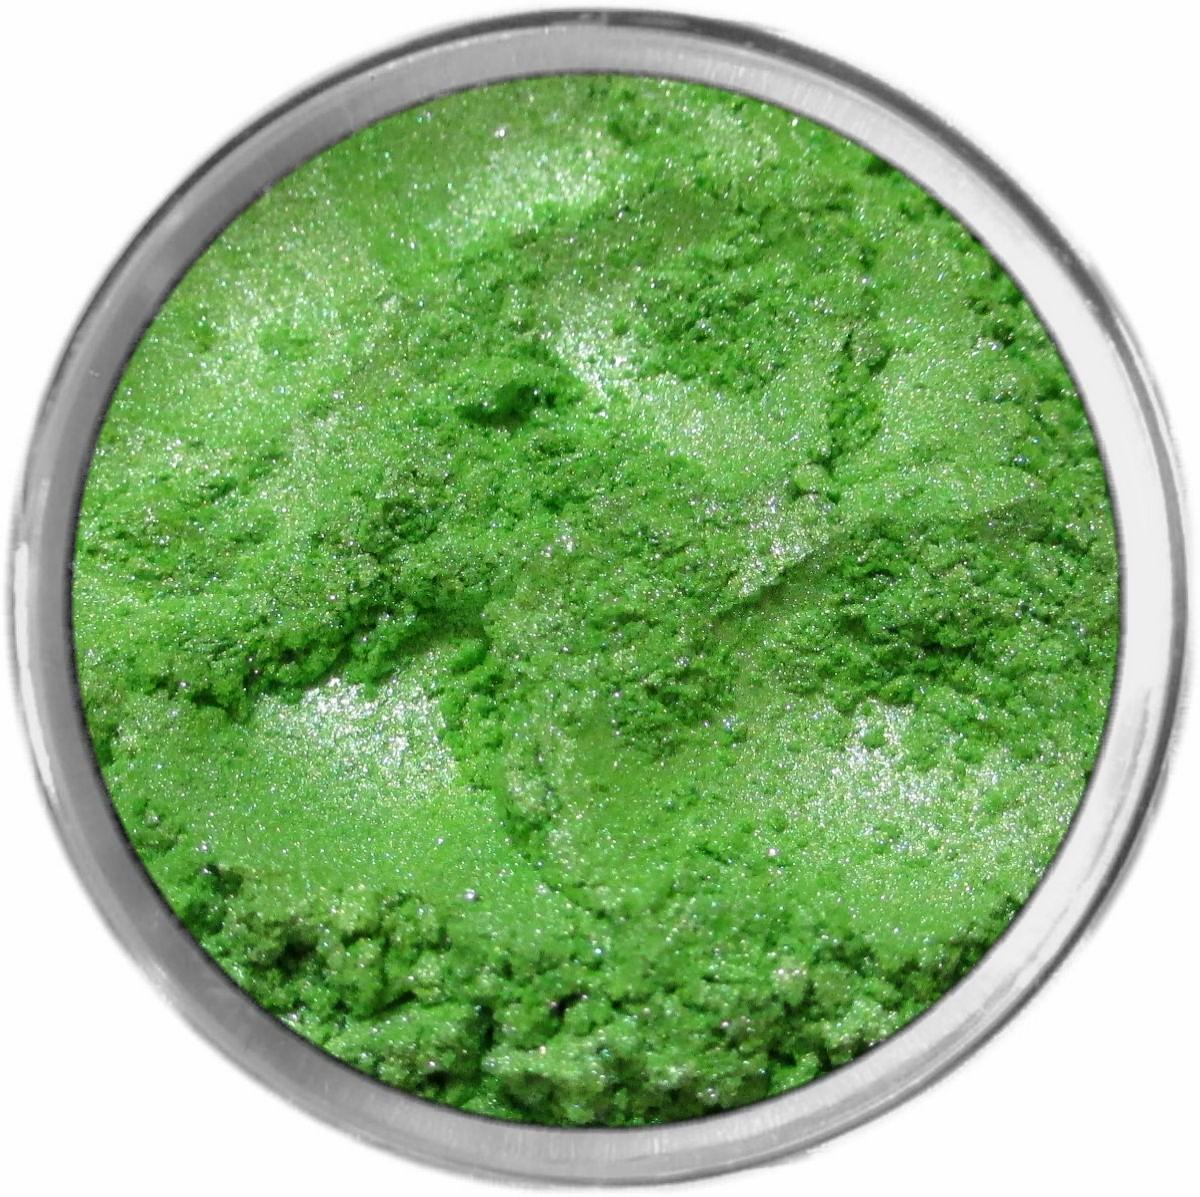 AUSPICIOUS loose powder mineral multi-use color makeup bare earth pigment minerals